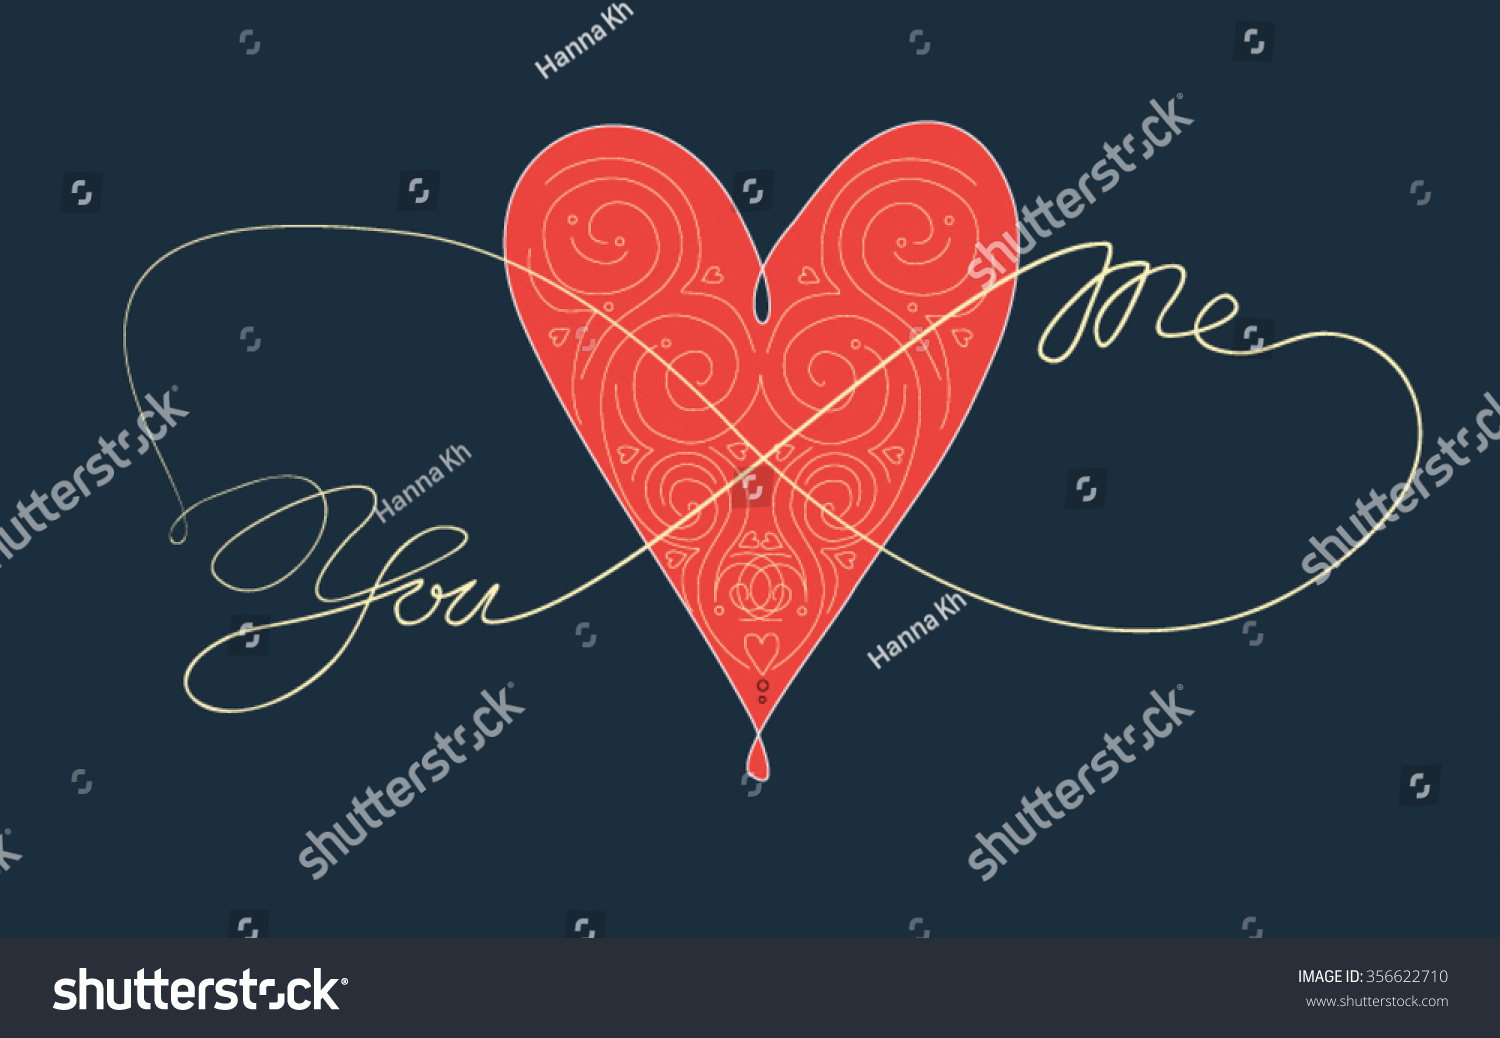 You Me Heart Infinity Coloring Book Stock Vector 356622710 ...